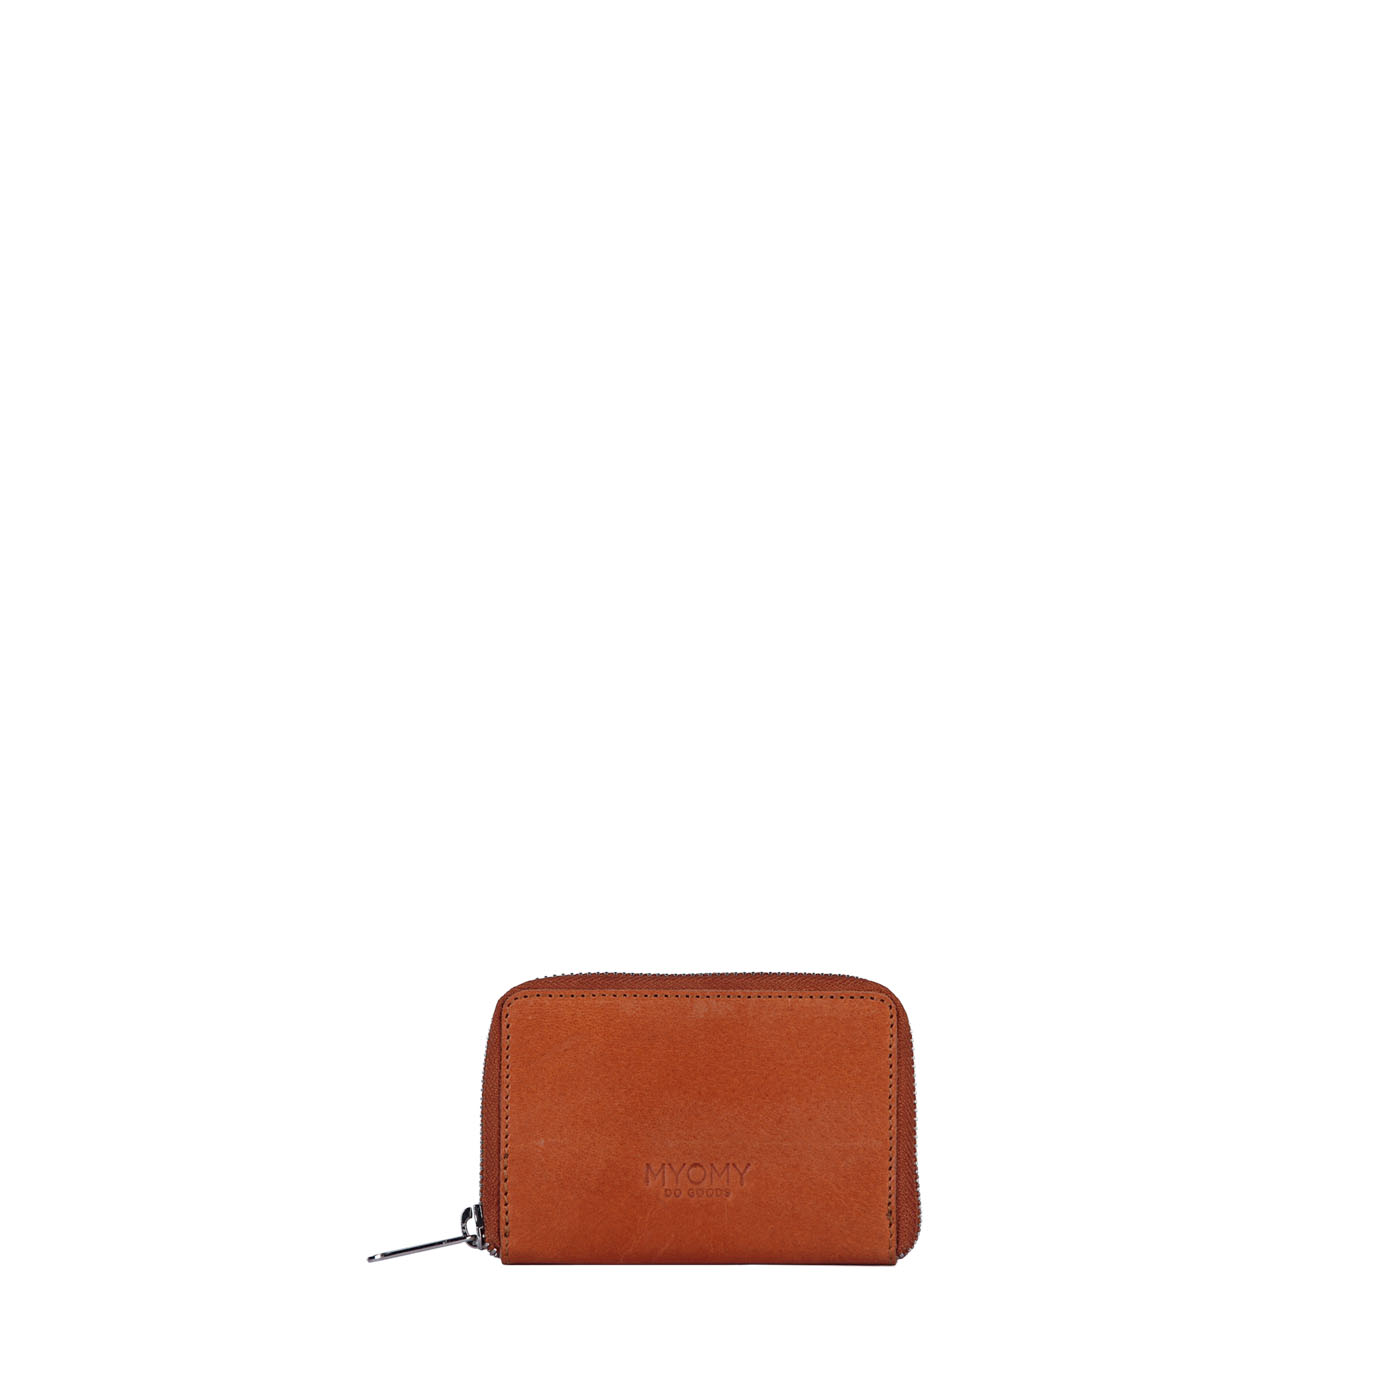 MYOMY Wallet small - hunter waxy ginger